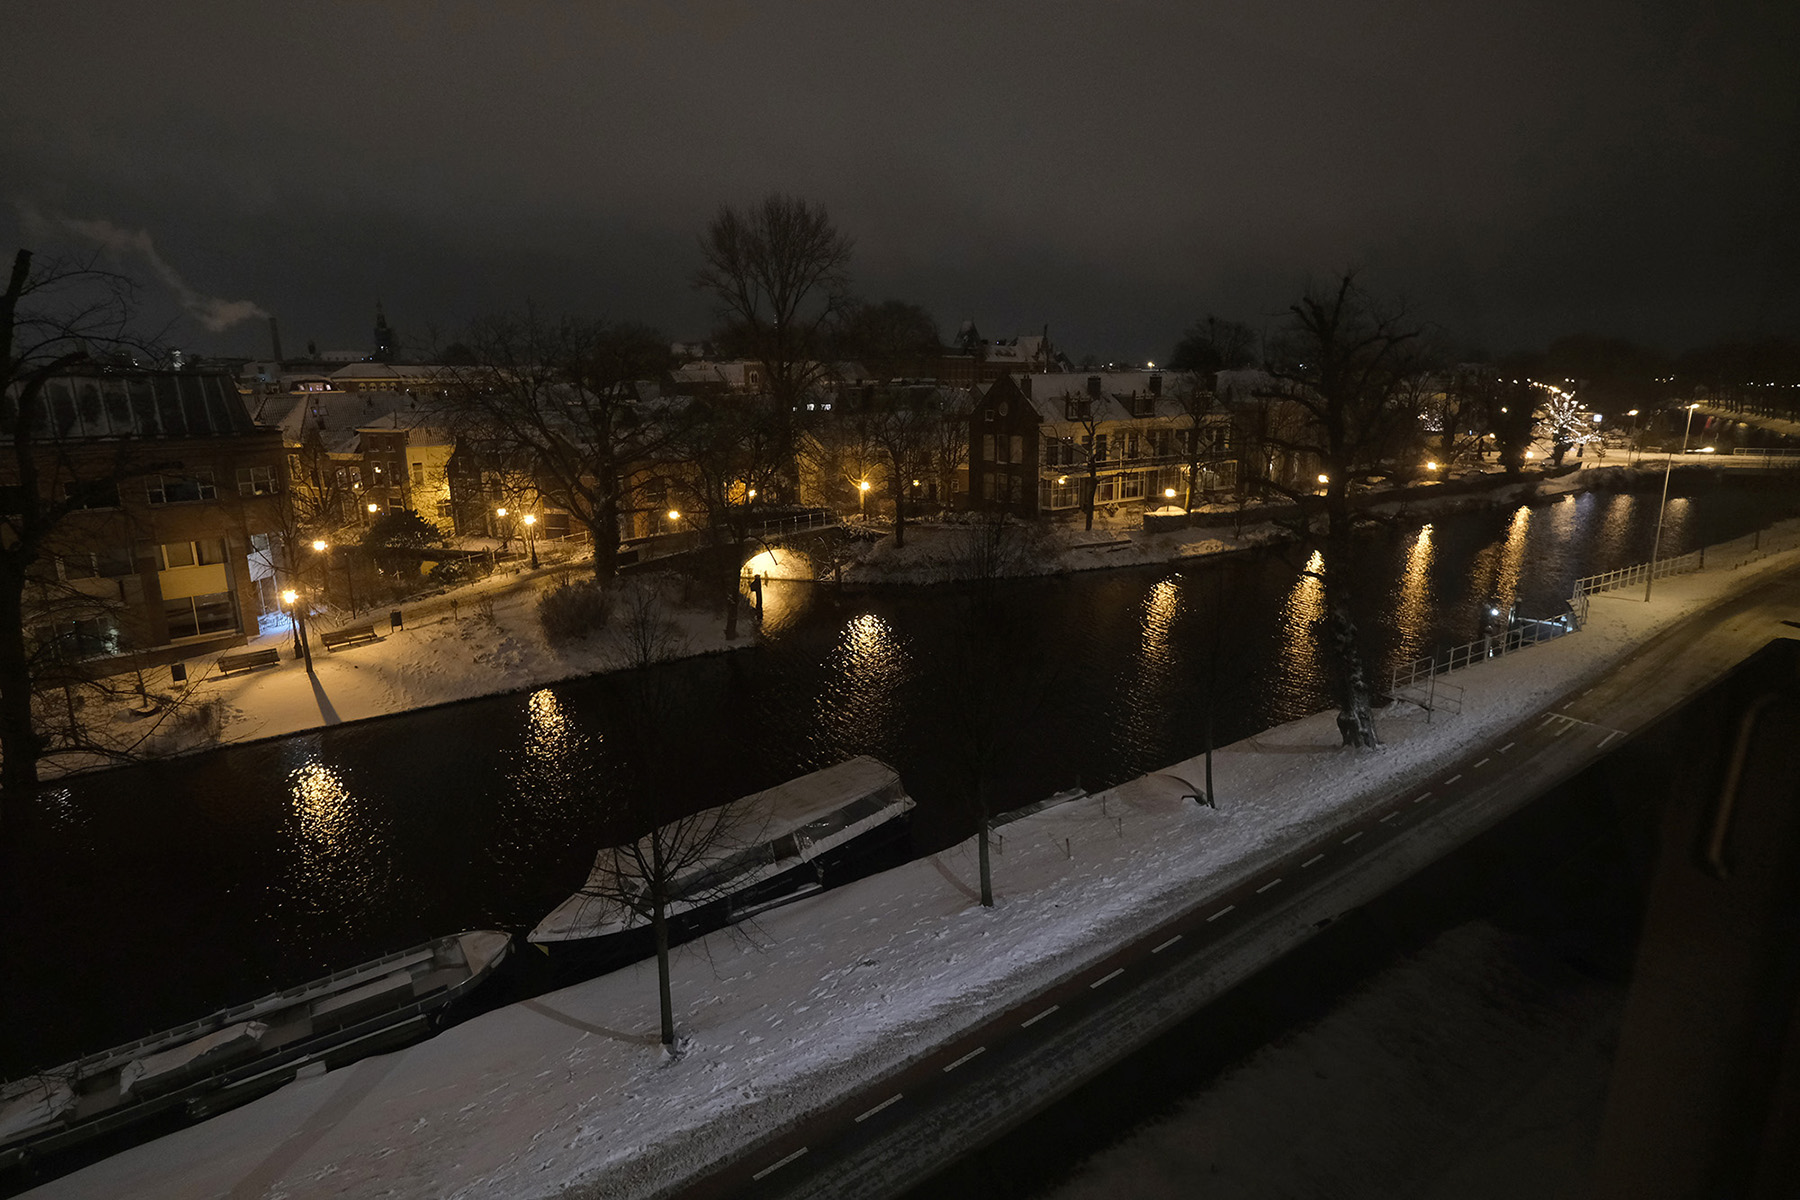 A snowy canal scene during a night curfew on February 7, 2021, in Leiden, Netherlands.